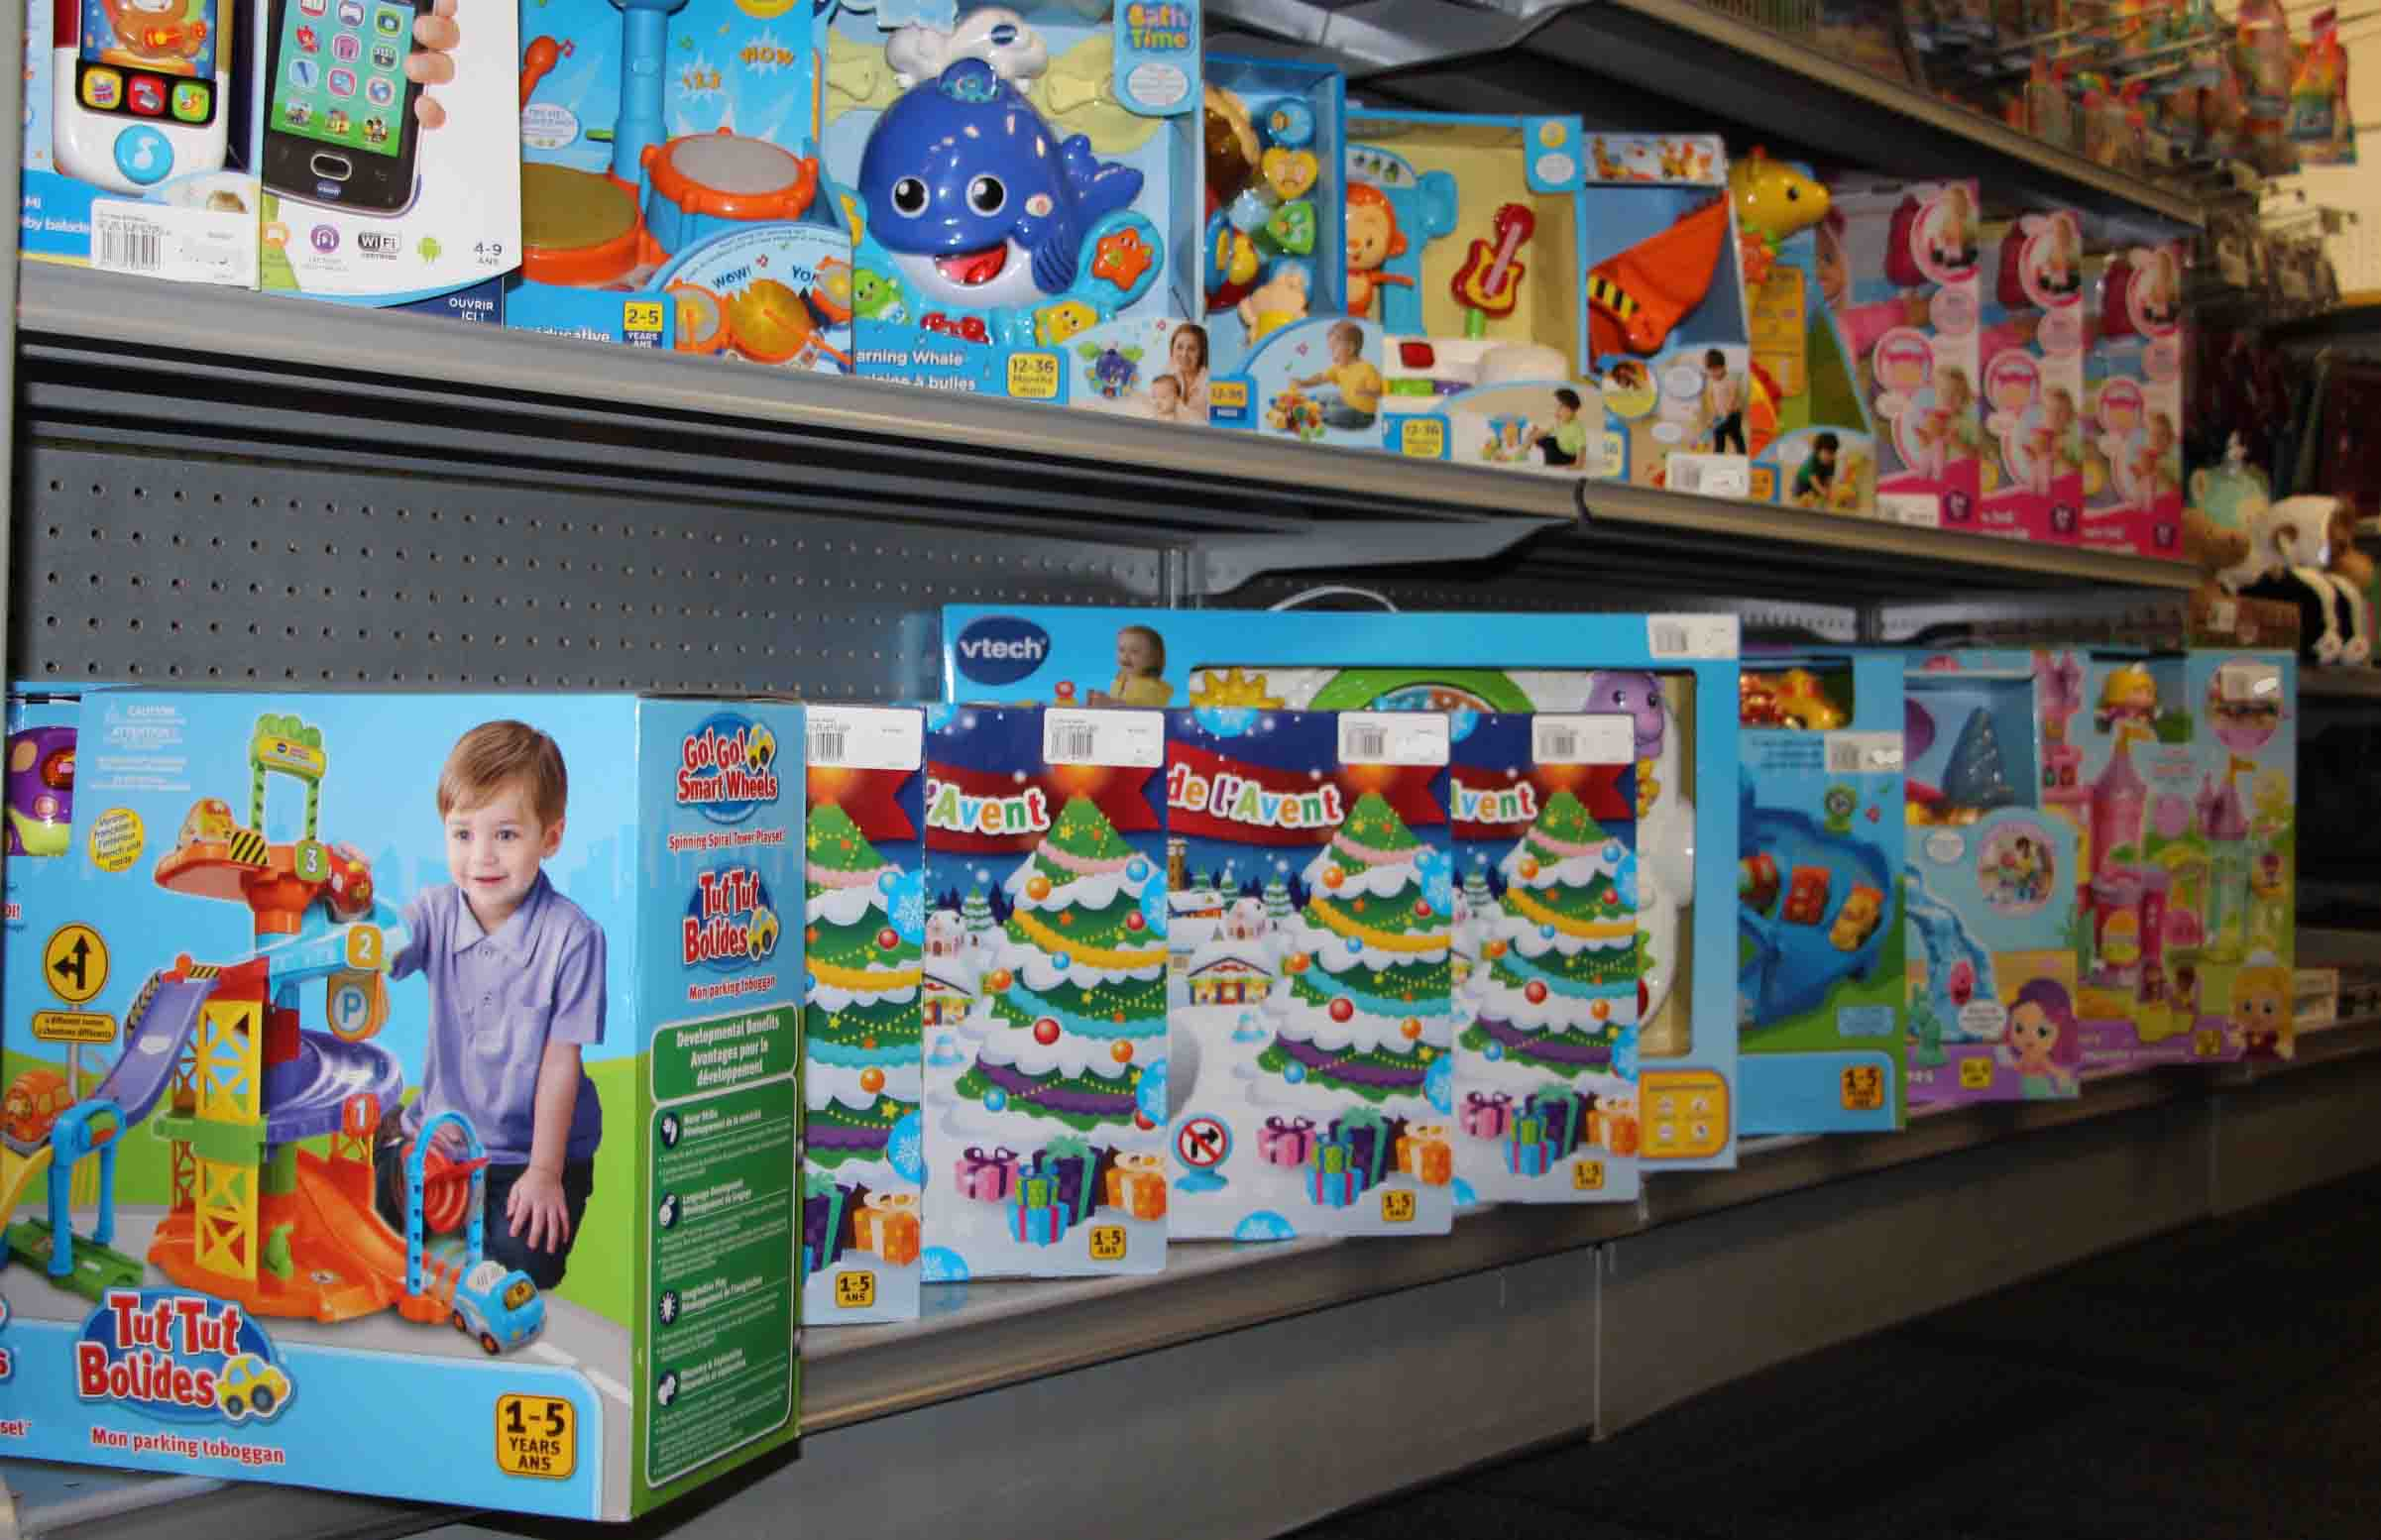 Vtech kids available at Gyva's store